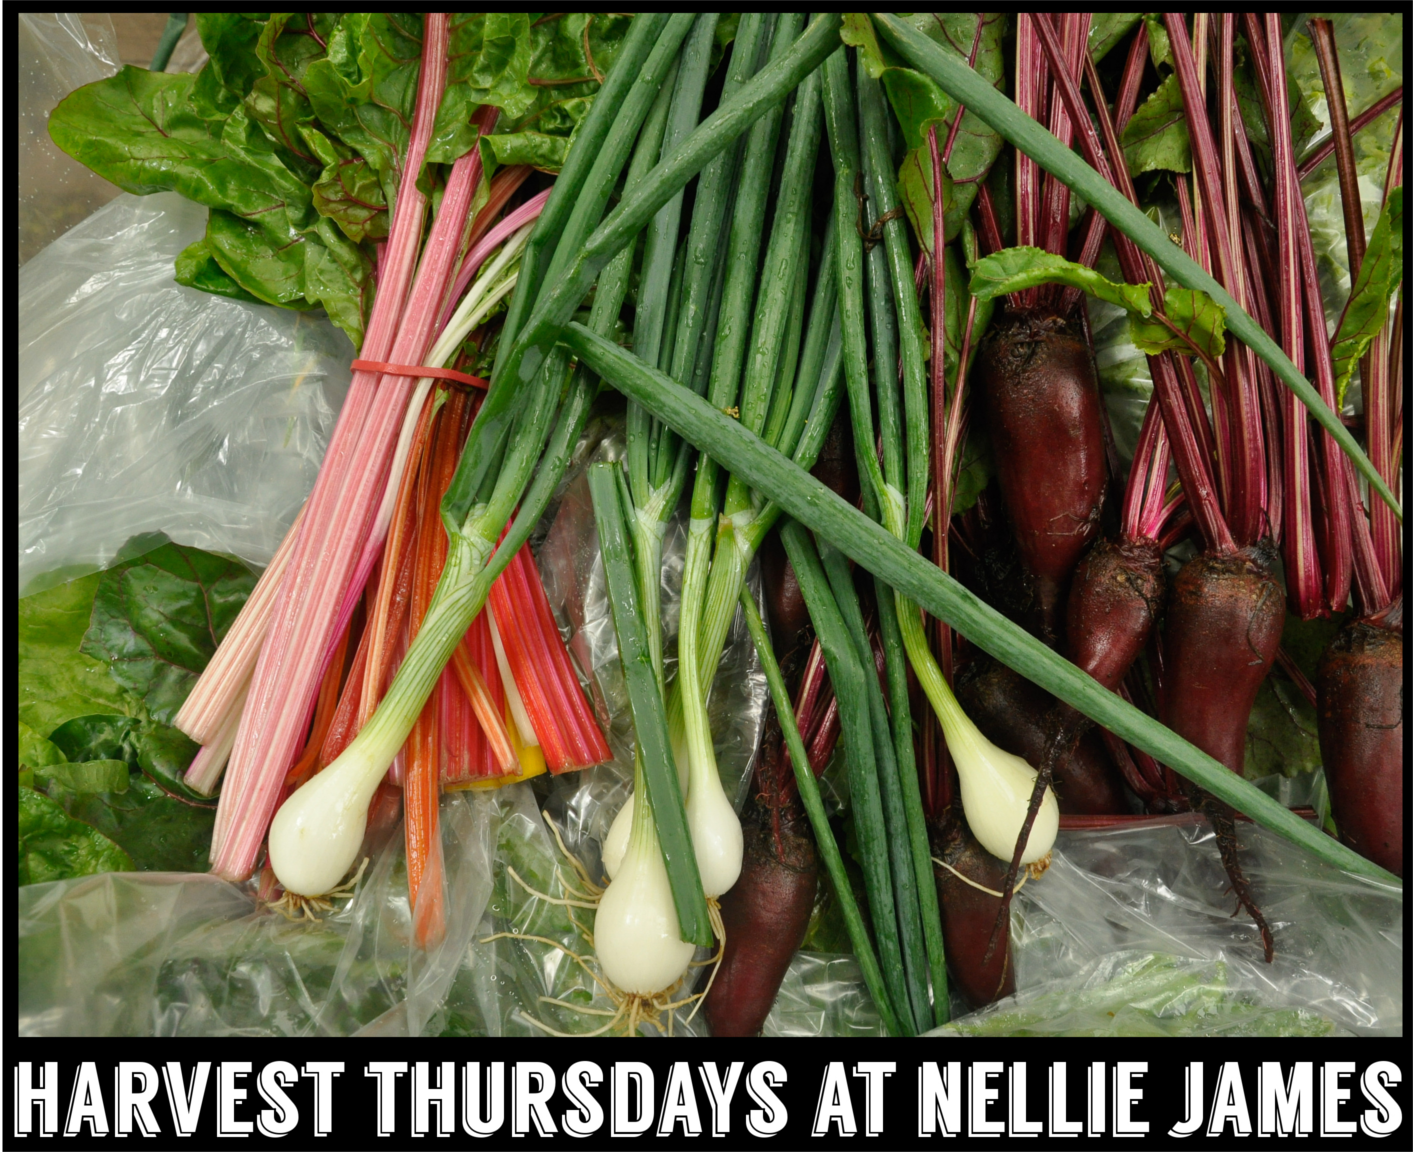 Harvest Thursdays at Nellie James